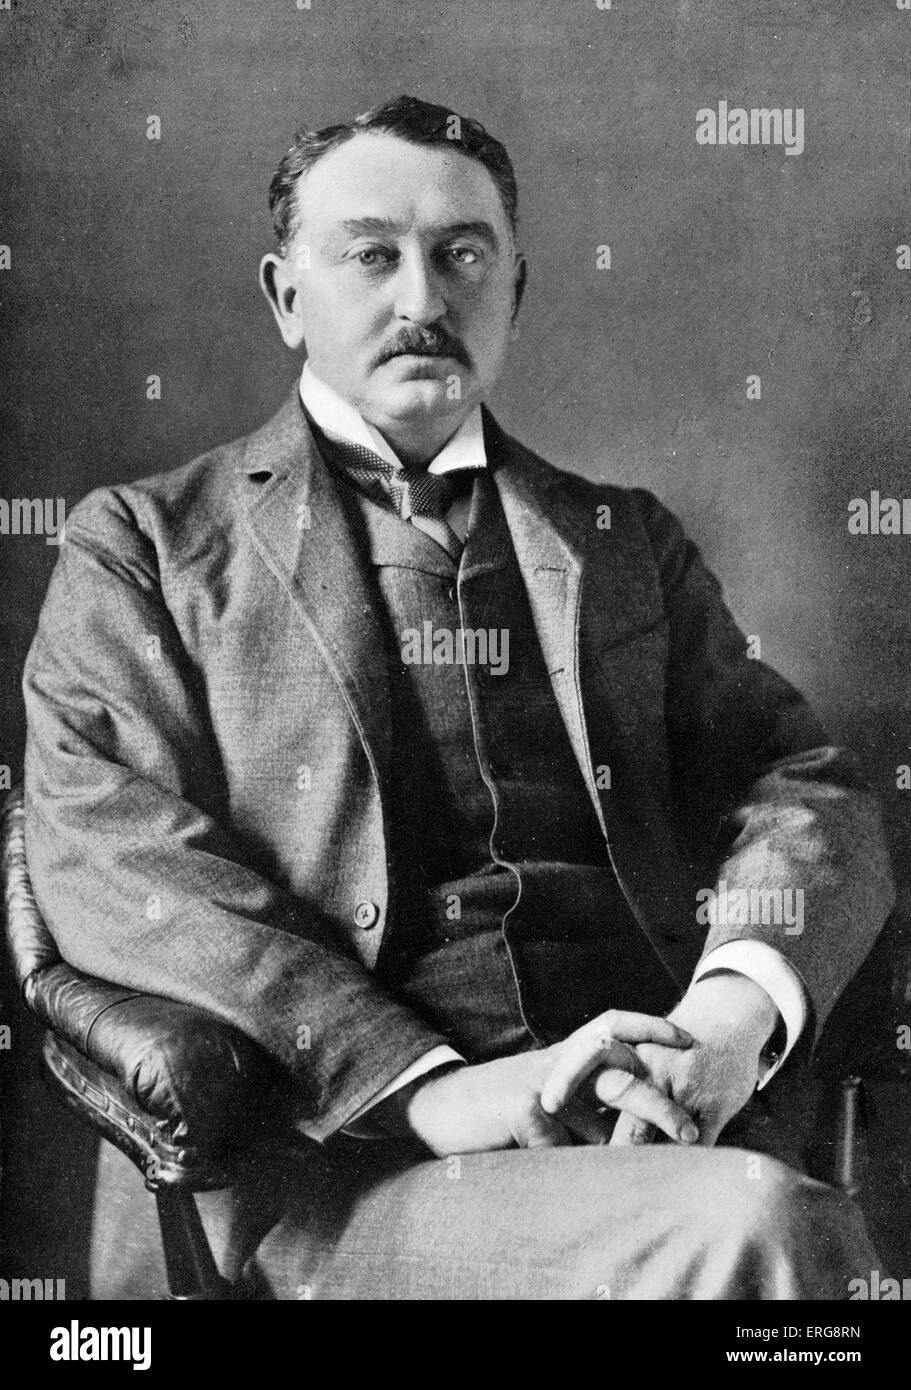 Cecil John Rhodes, portrait c. 1900.   Cecil Rhodes was an English-born businessman, mining magnate, and politician - Stock Image